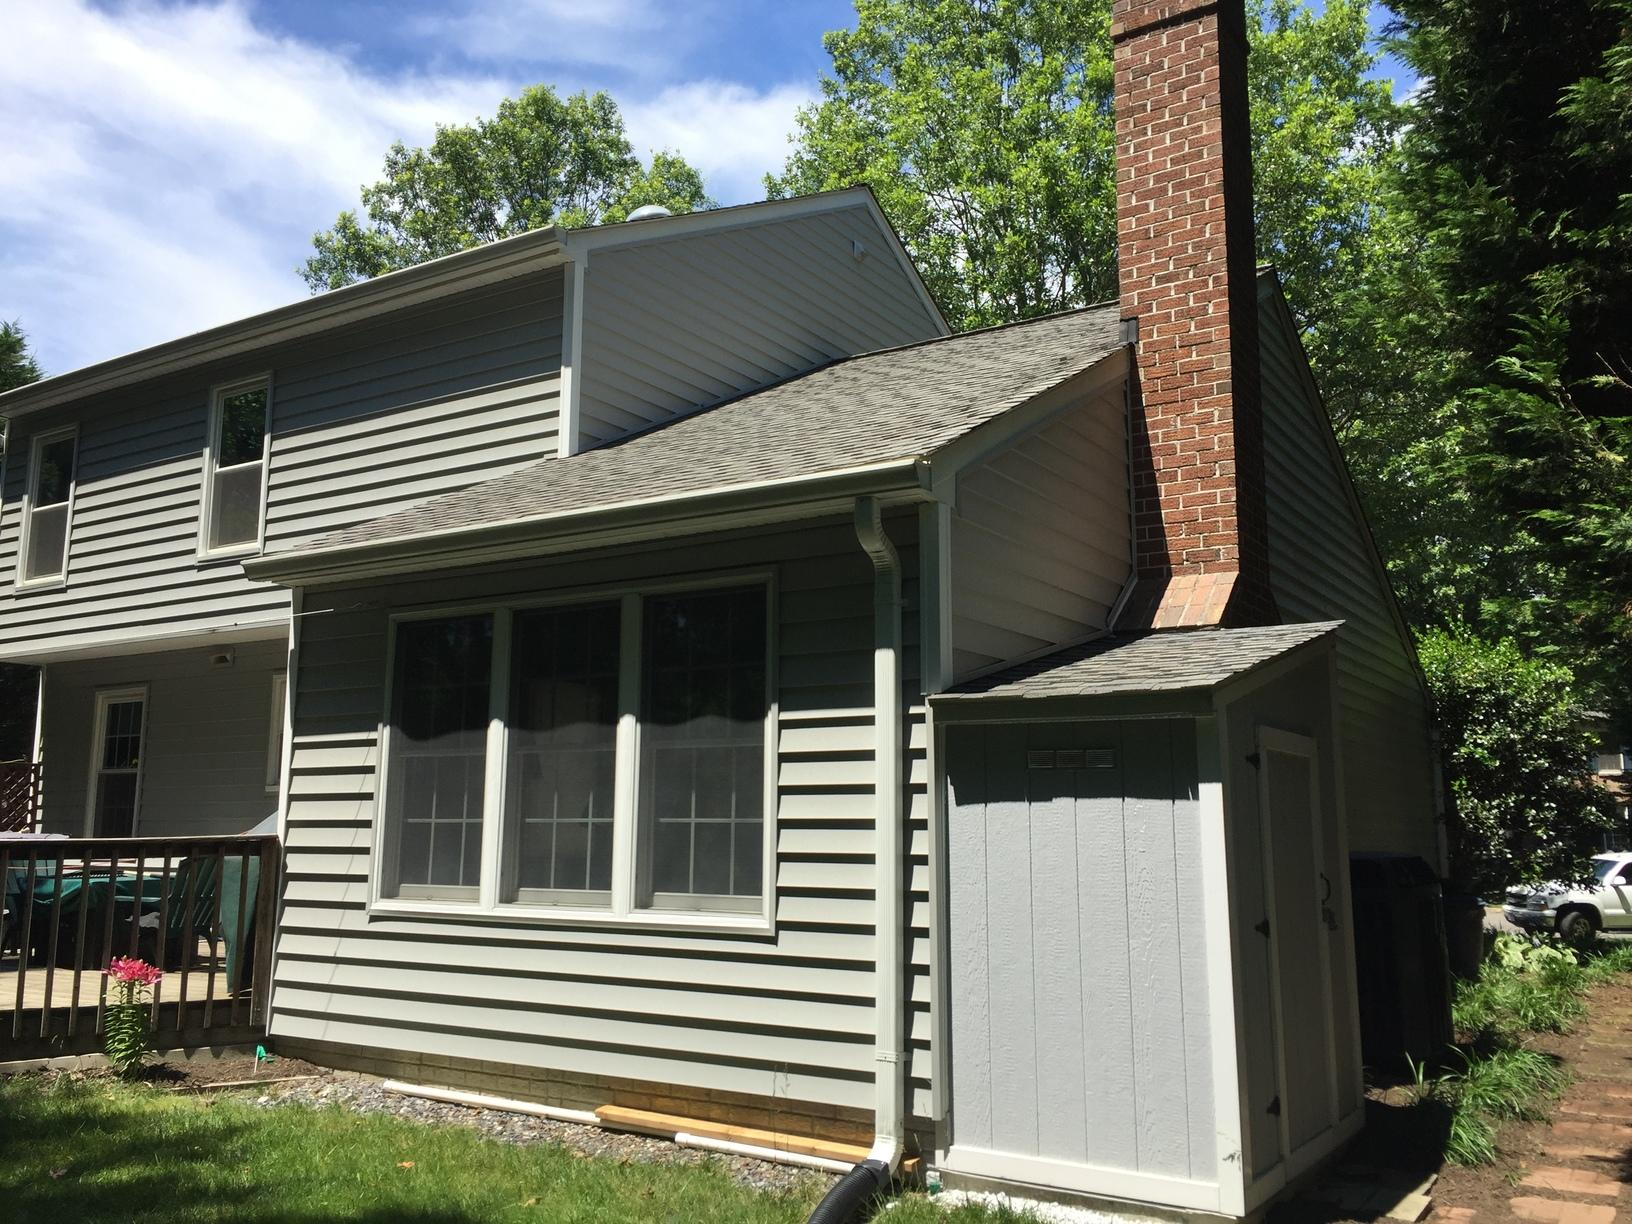 Siding Replacement in Annapolis, MD - After Photo